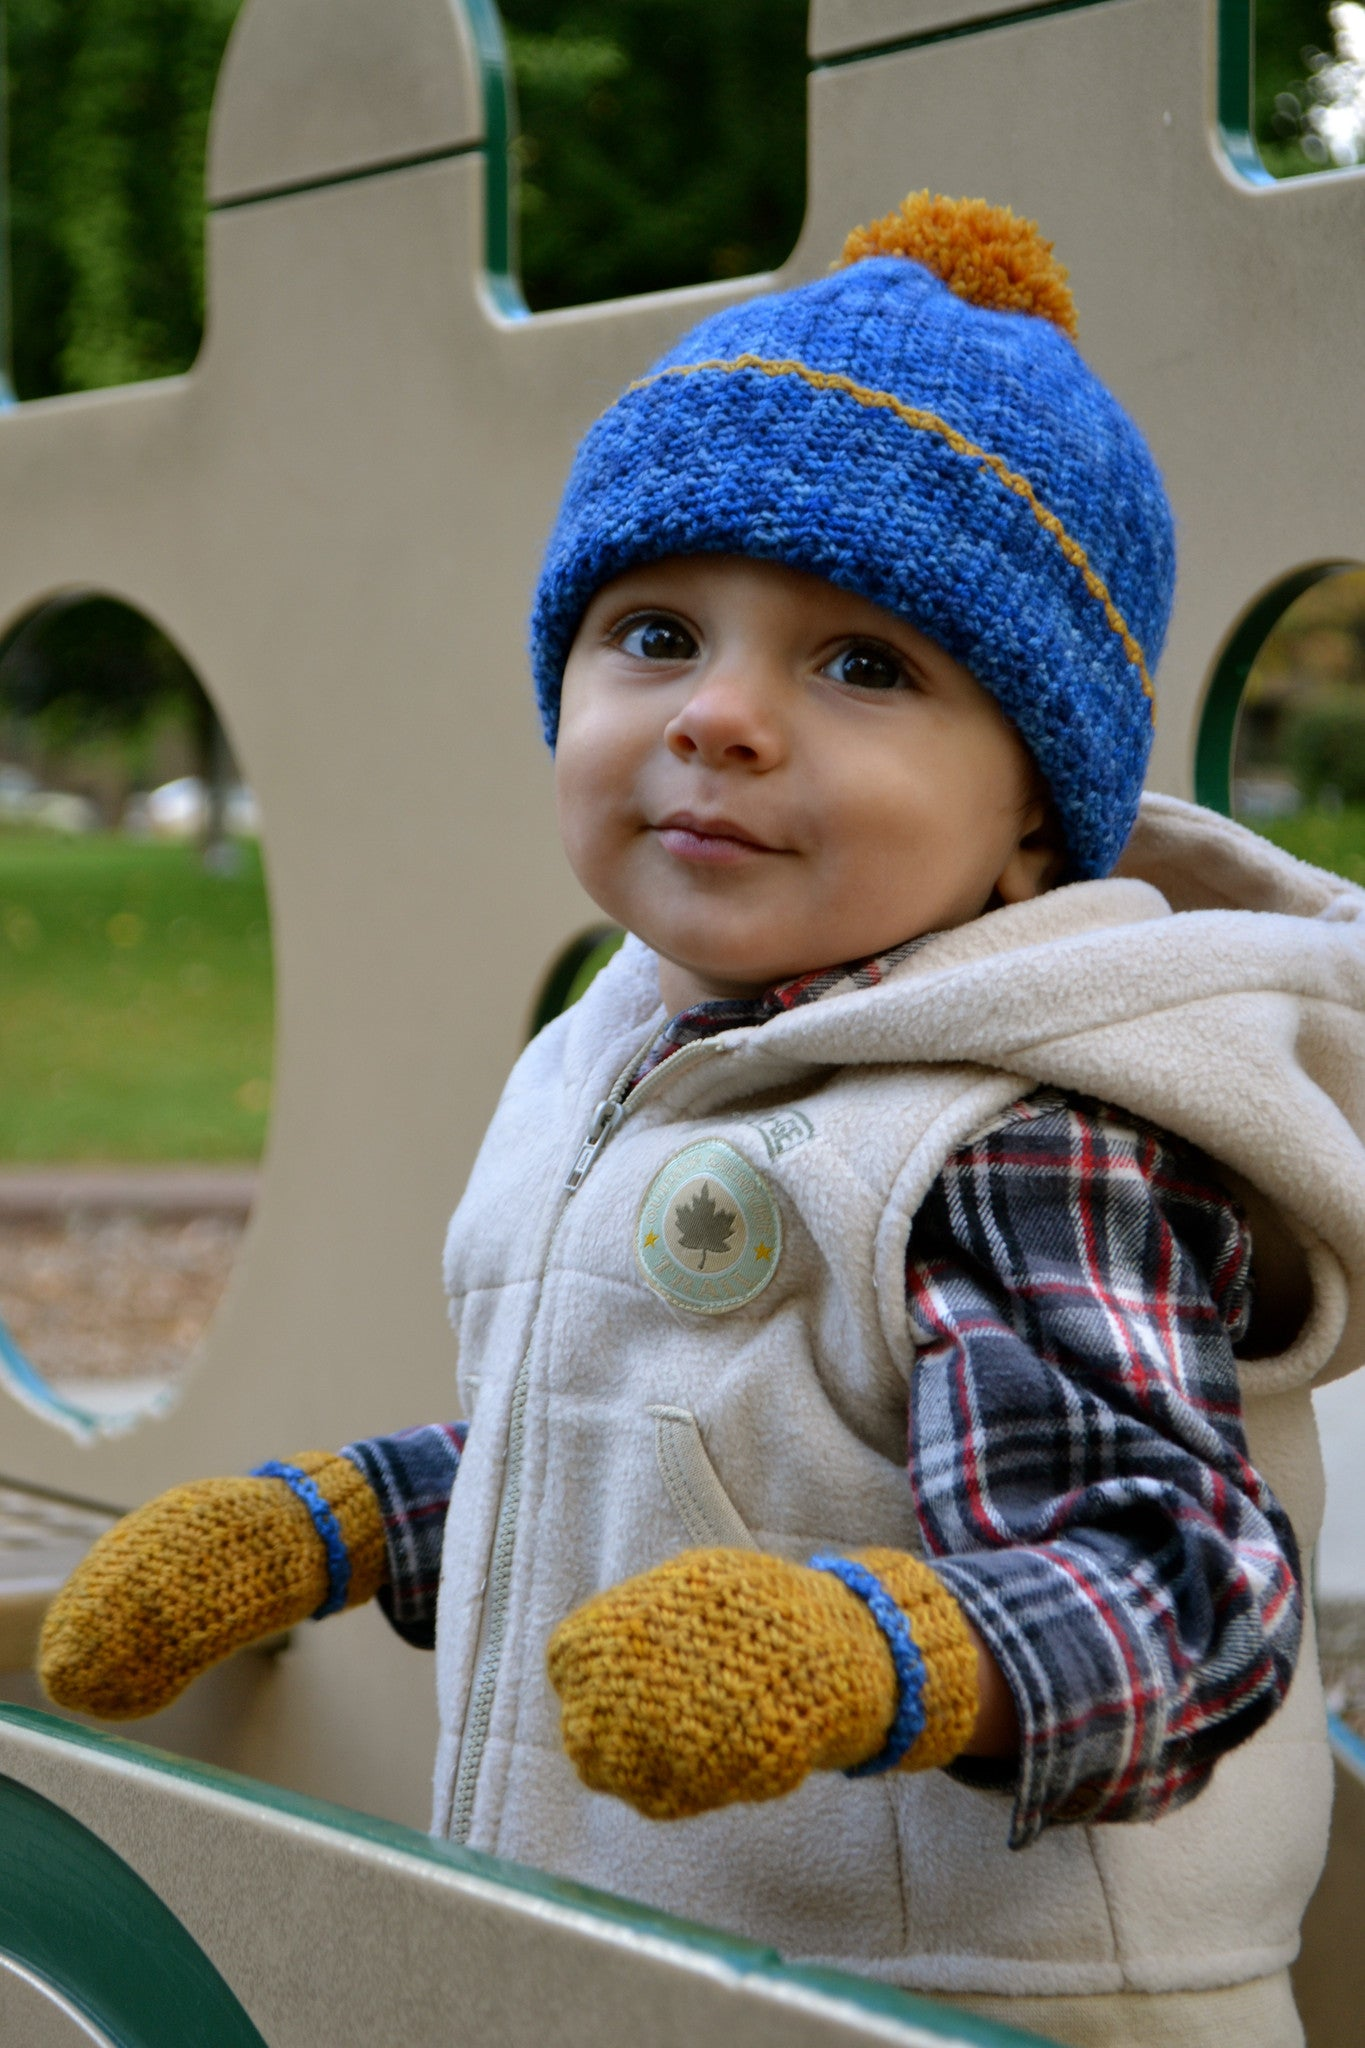 Petit Henry crochet hat and mittens. Petit Henry crochet hat and mittens ·  Petit Henri crochet hat with pompom ddce0fc07b26